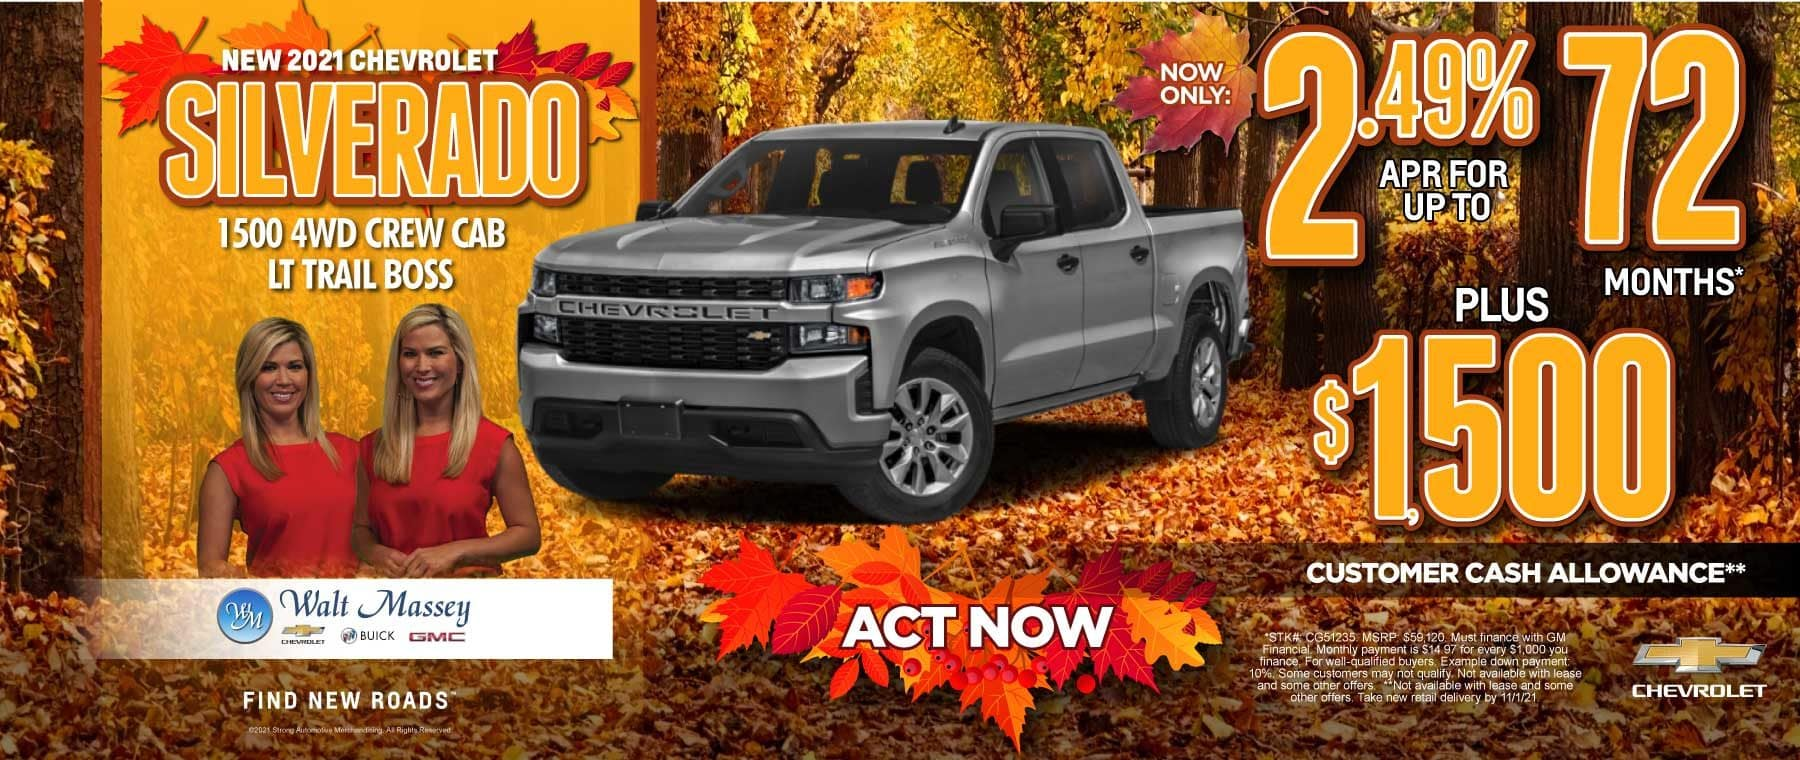 2021 Chevrolet Silverado 2.49% APR for up to 72 months Plus $1,500 Customer Cash Allowance. Act now.